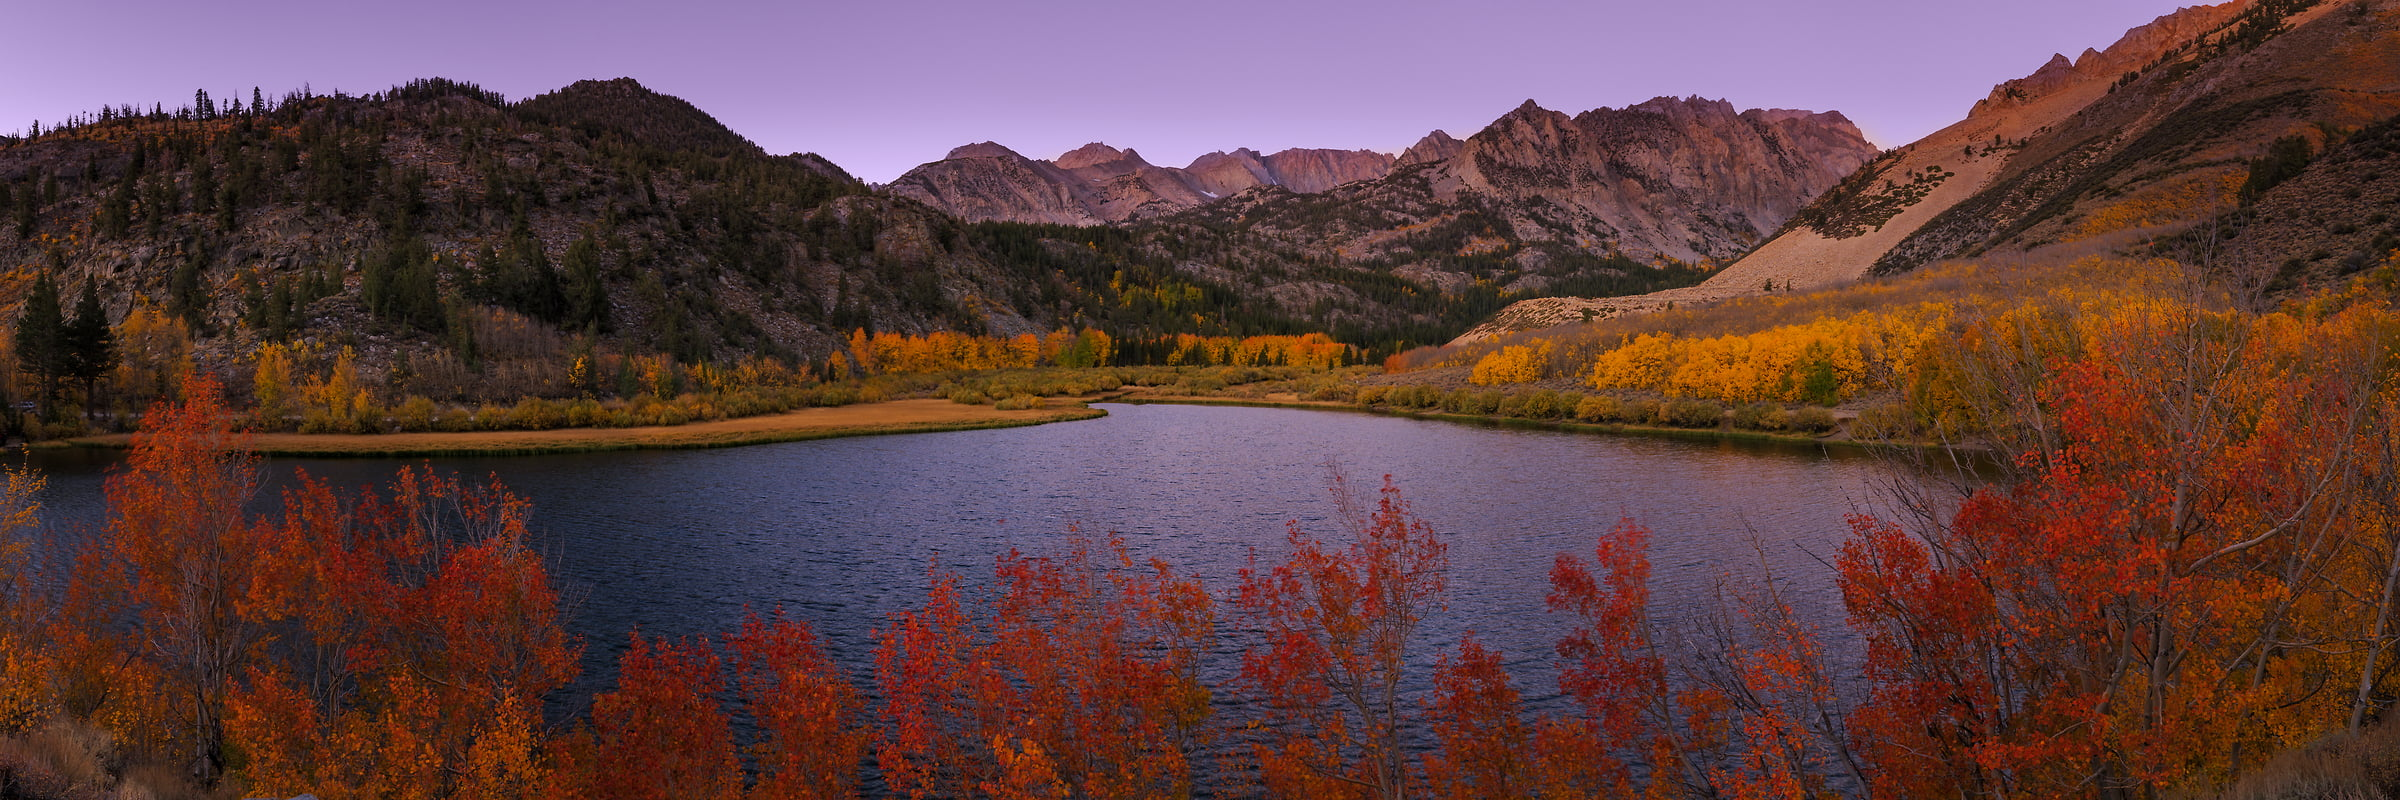 150 megapixels! A very high resolution, large-format VAST photo print of North Lake in the Sierra Nevada Mountains, California in Autumn; nature landscape photo created by Guido Brandt